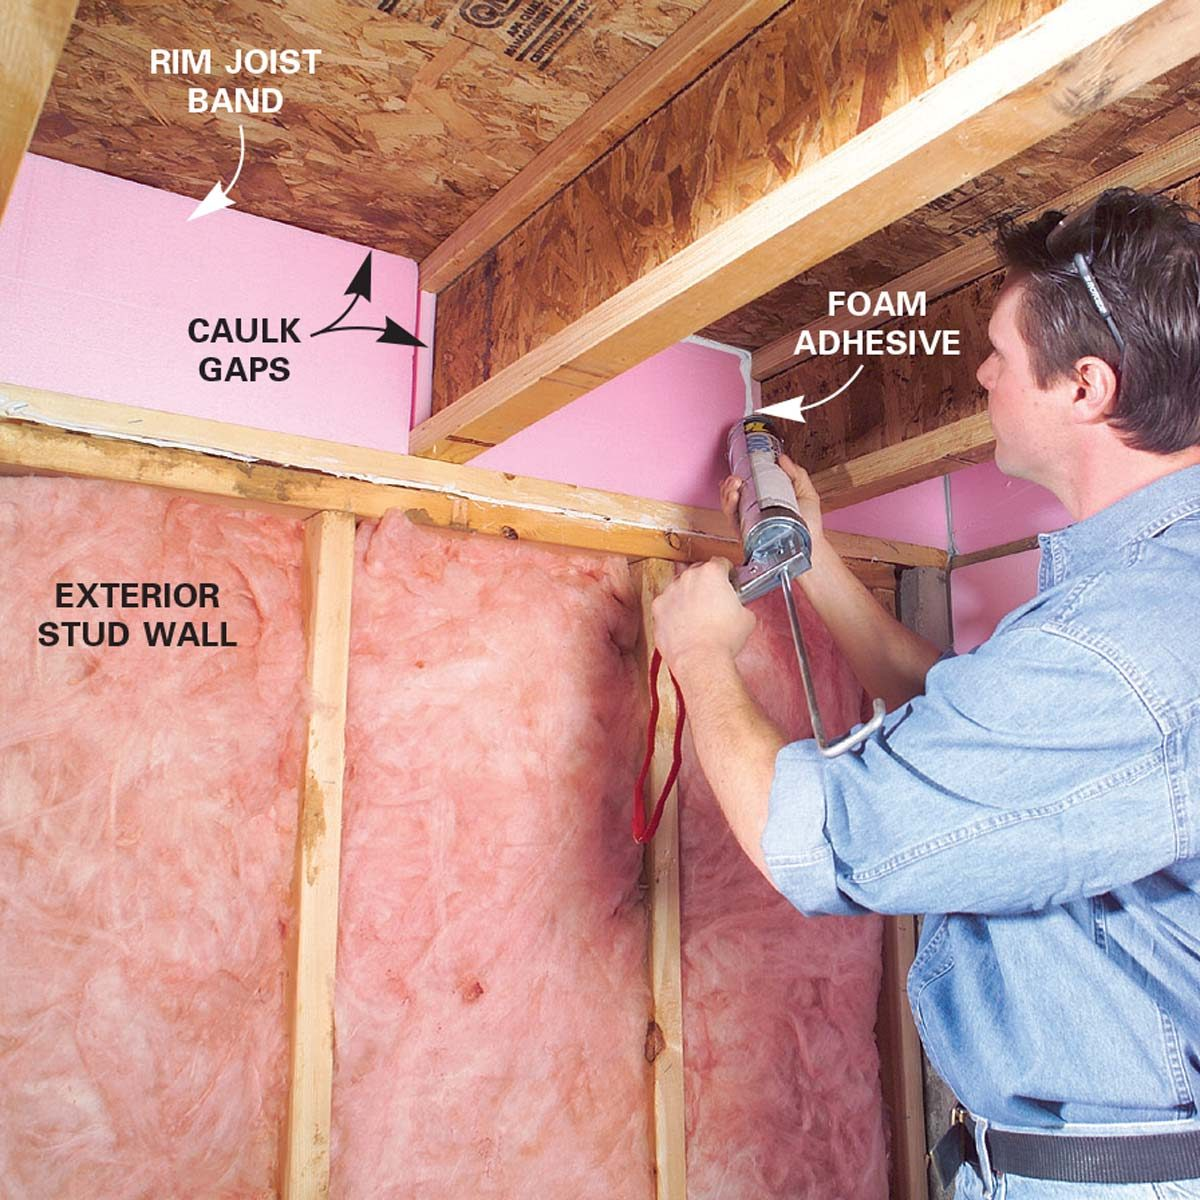 Basement Construction Ideas To Strengthen Your Basement Steps to Finishing a Basement: 2. Caulk Gaps